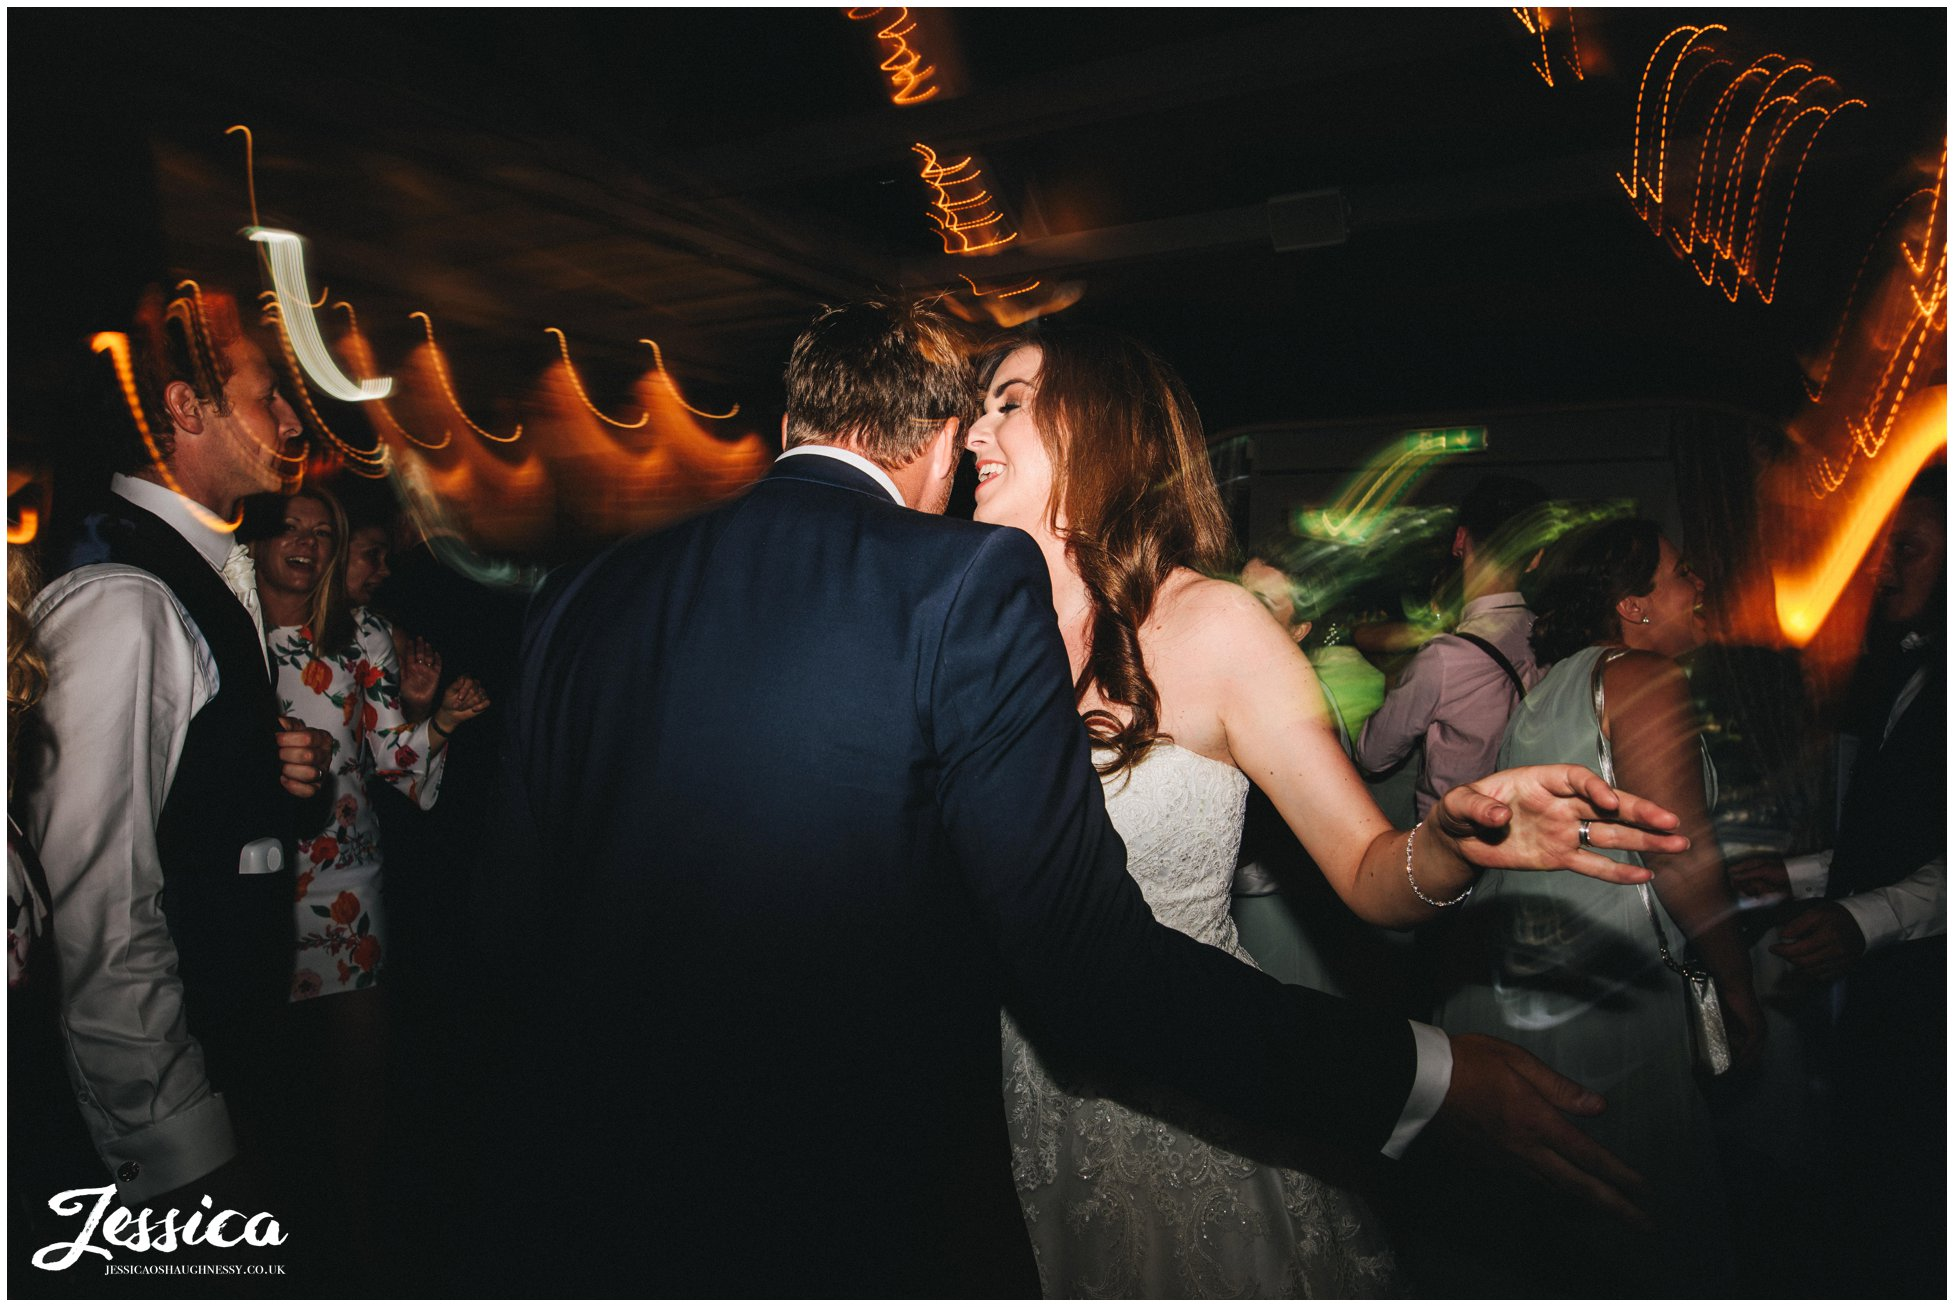 newly wed's dance on the dancefloor at their wedding reception